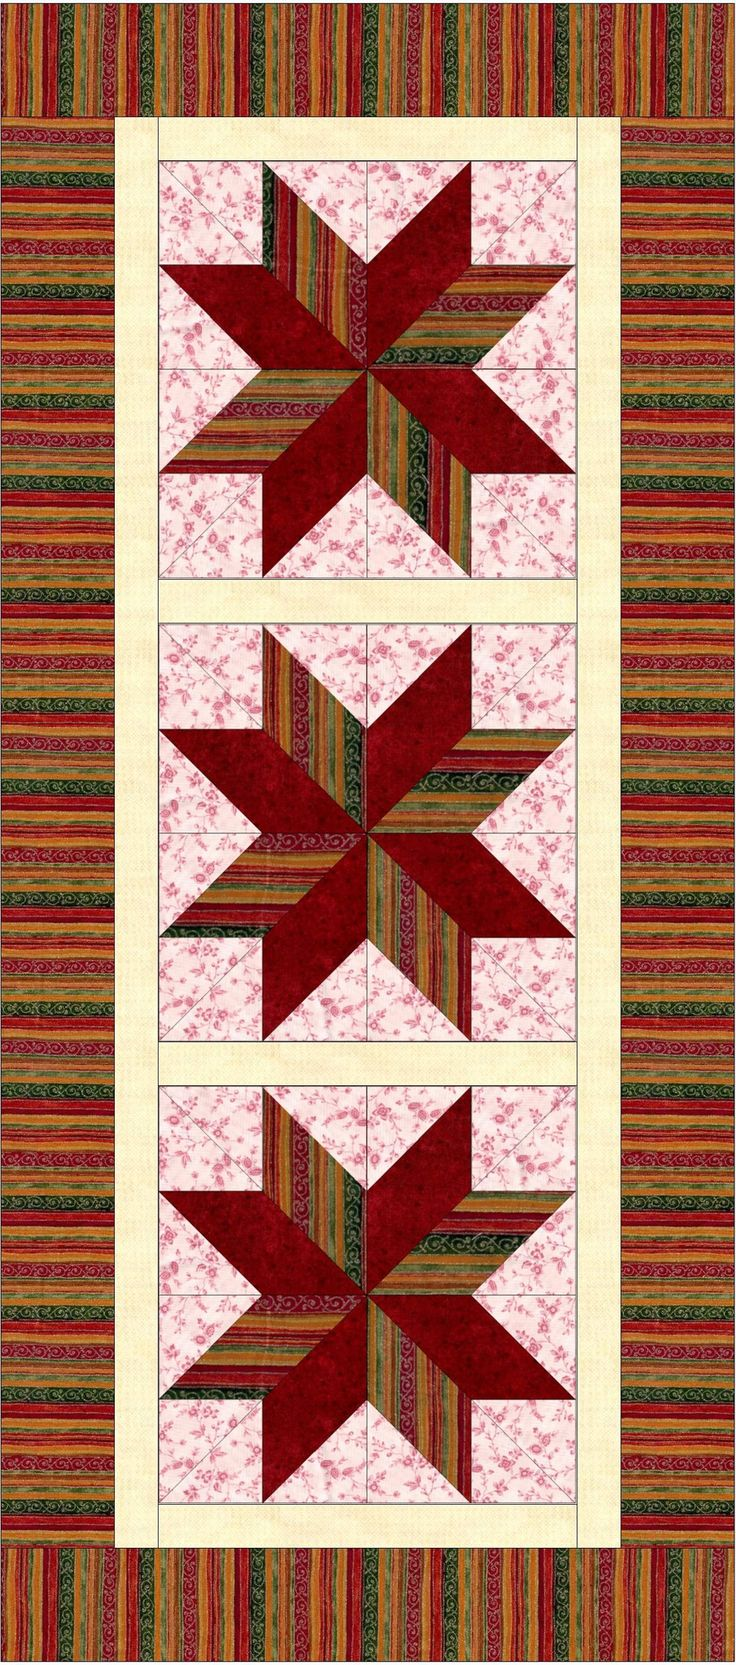 Quilting Project Ideas : Fabulous table runner for the holidays or wintertime with these beautiful fabrics in harvest ...